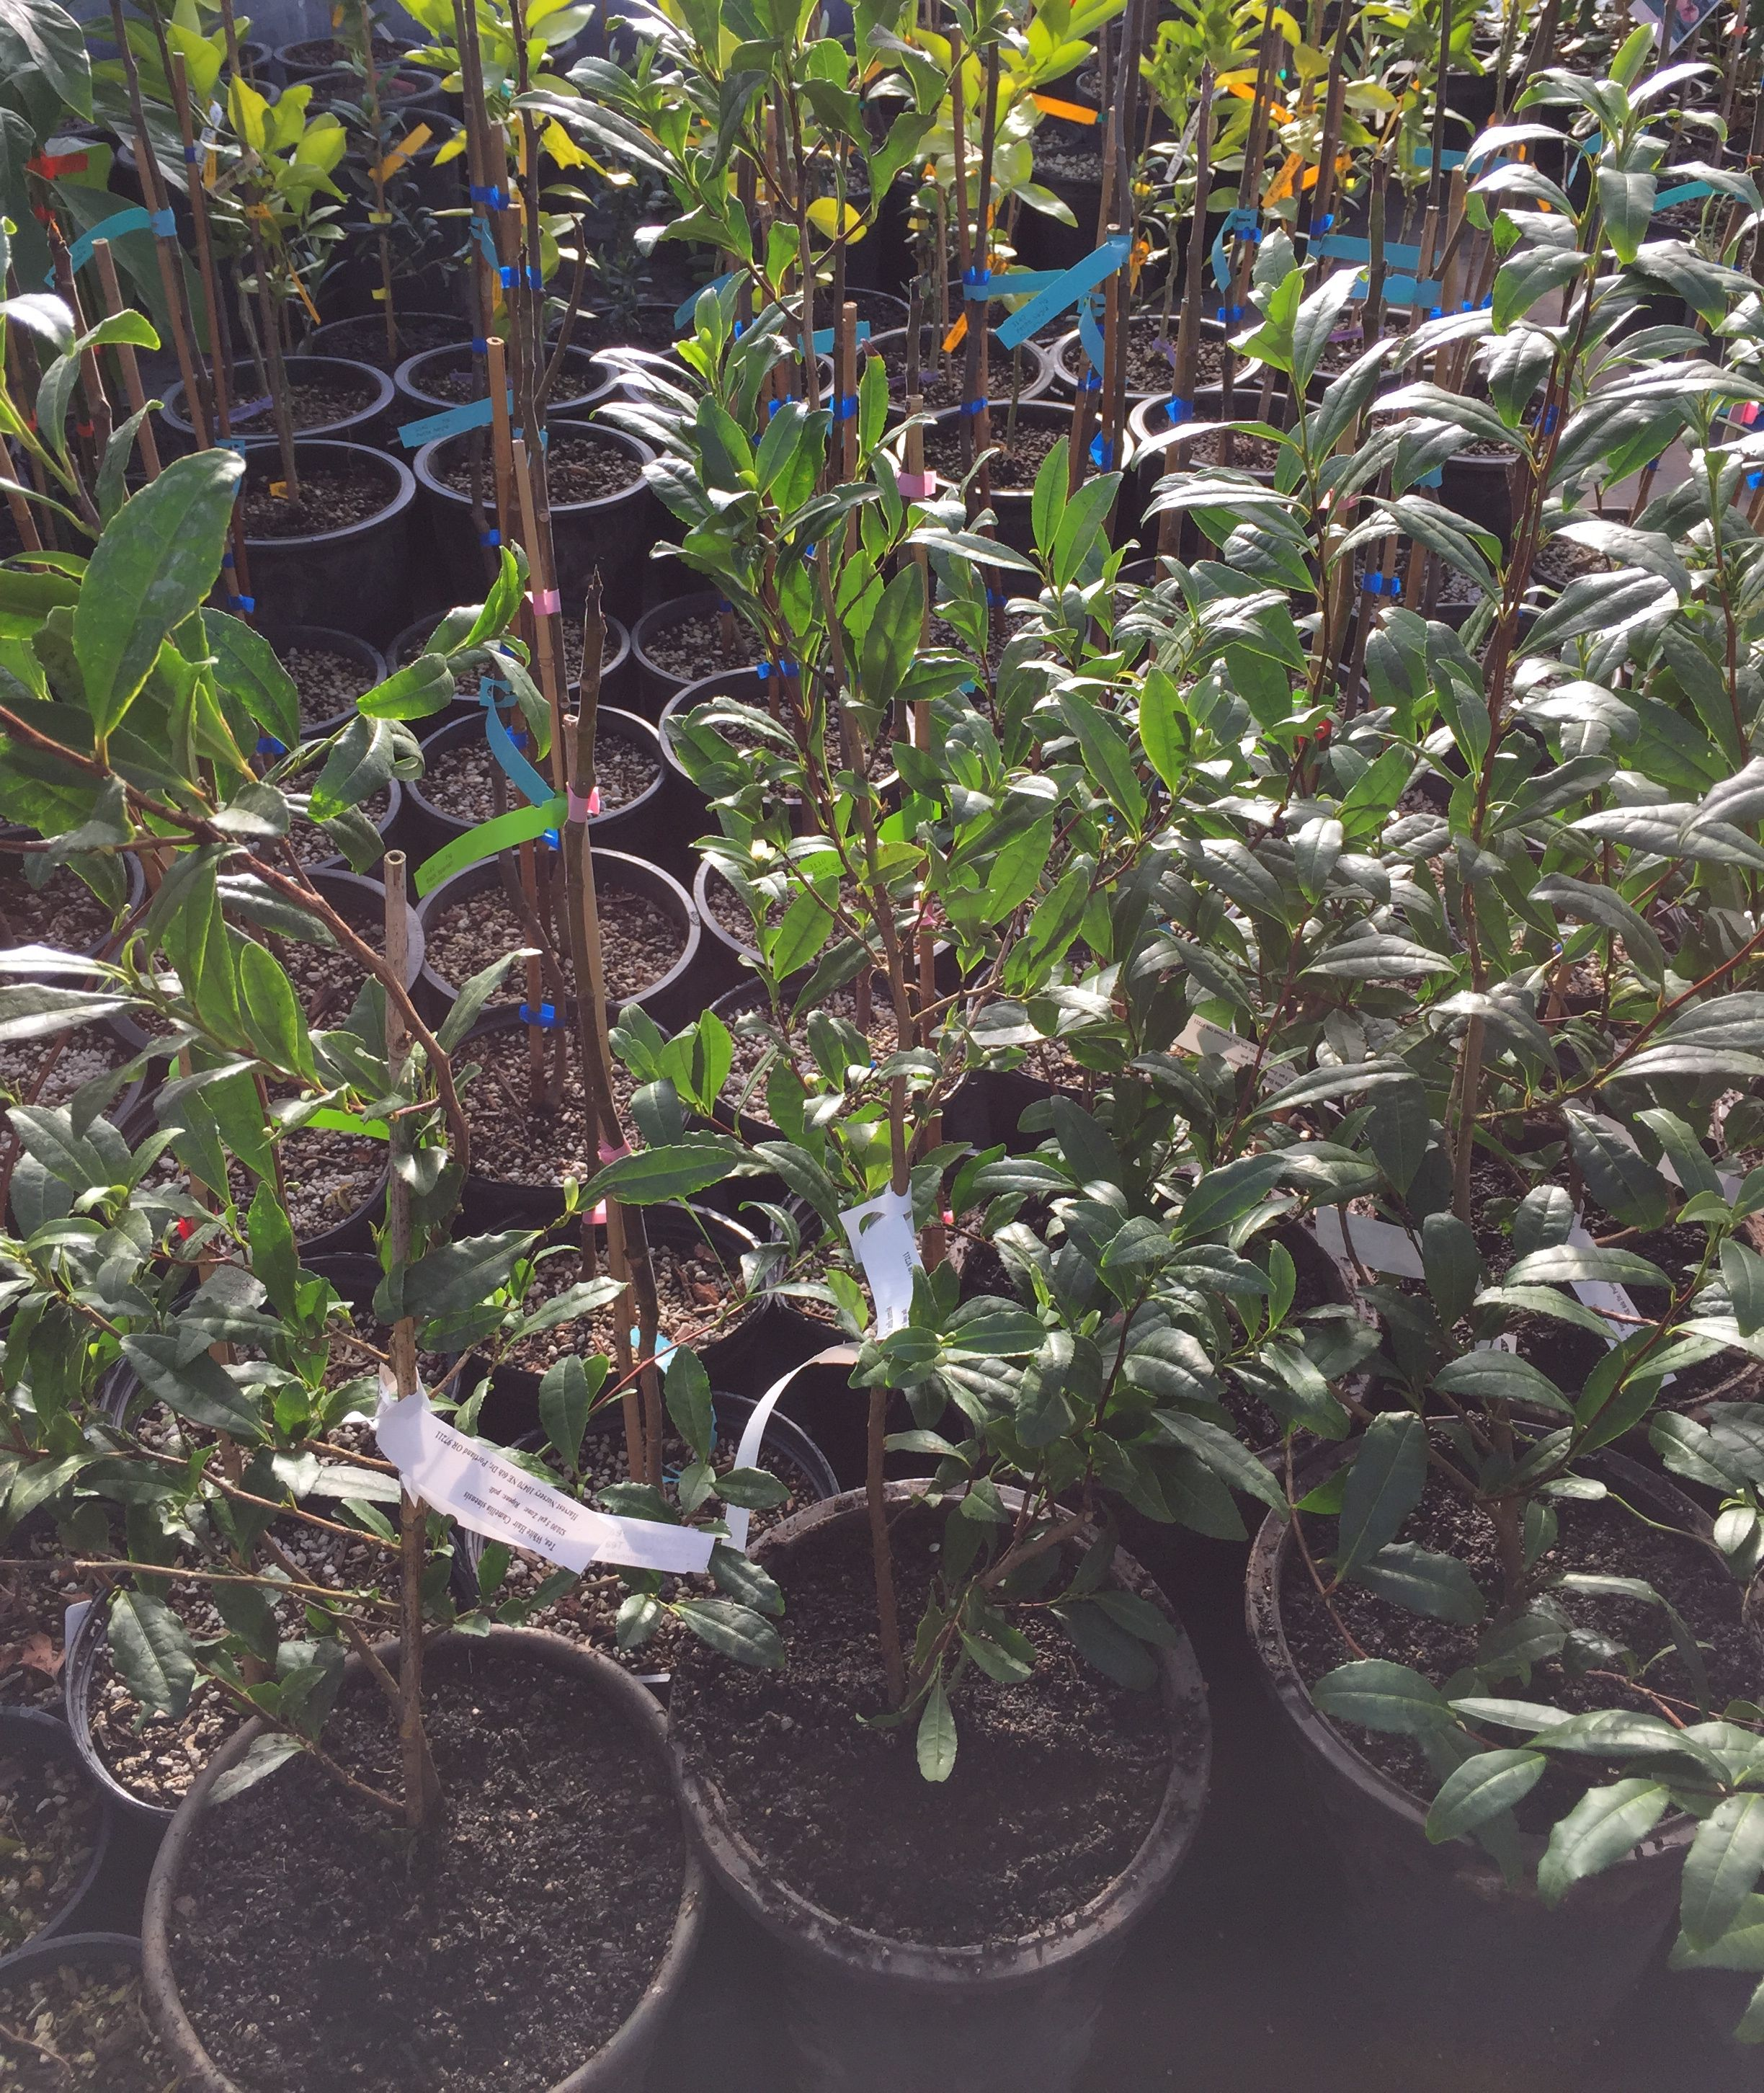 Harvest Nursery Of Portland Has Camellia Sinensis Or Tea This Edibles Focused You Can Grow Yourself I M So Excited To Get Some